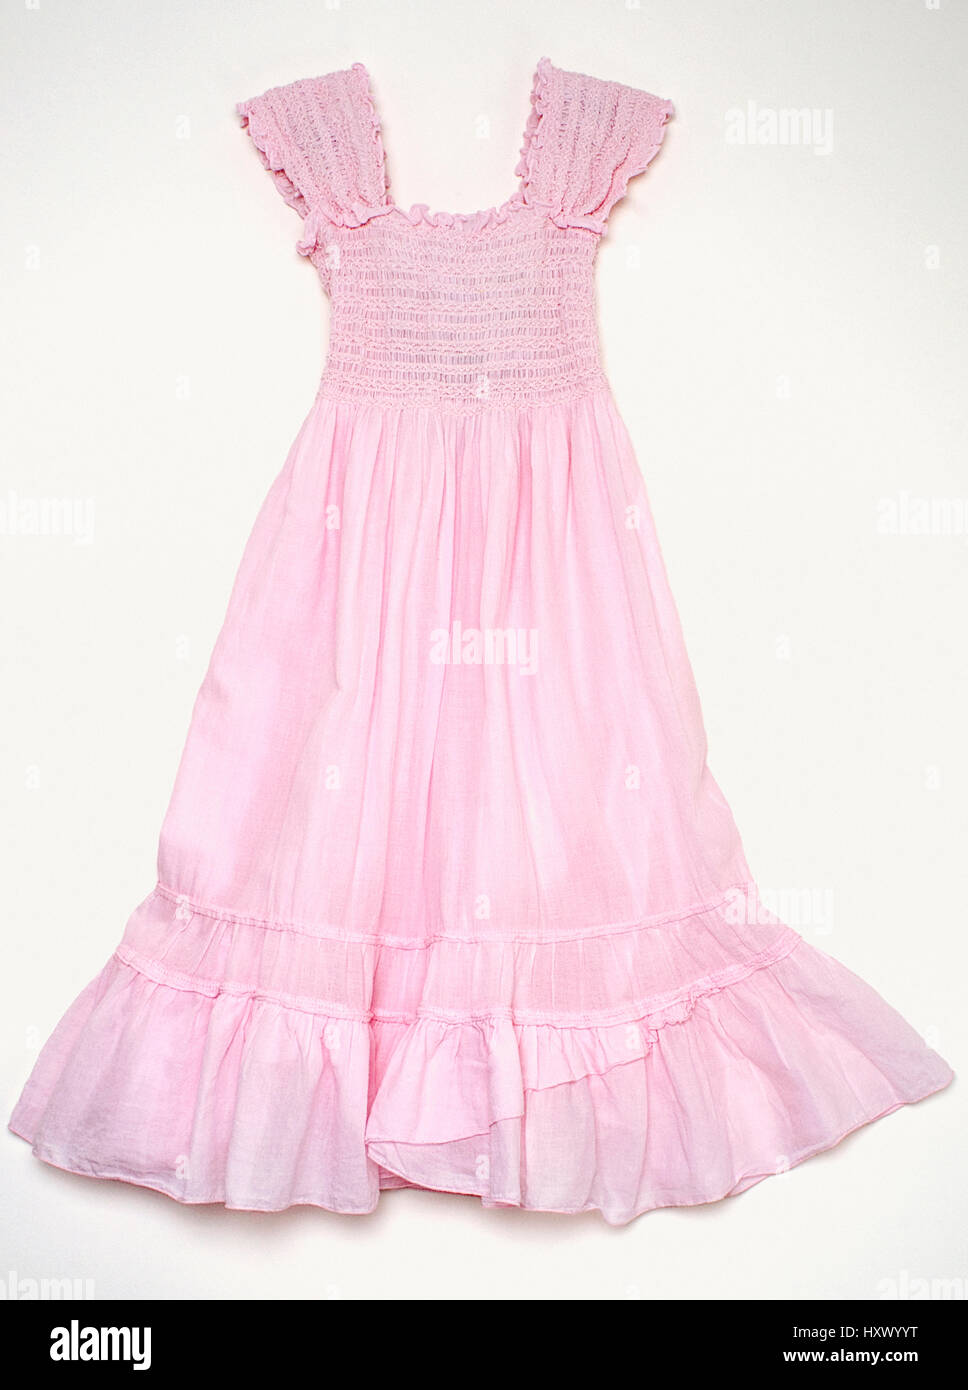 A little girls pink dress. - Stock Image